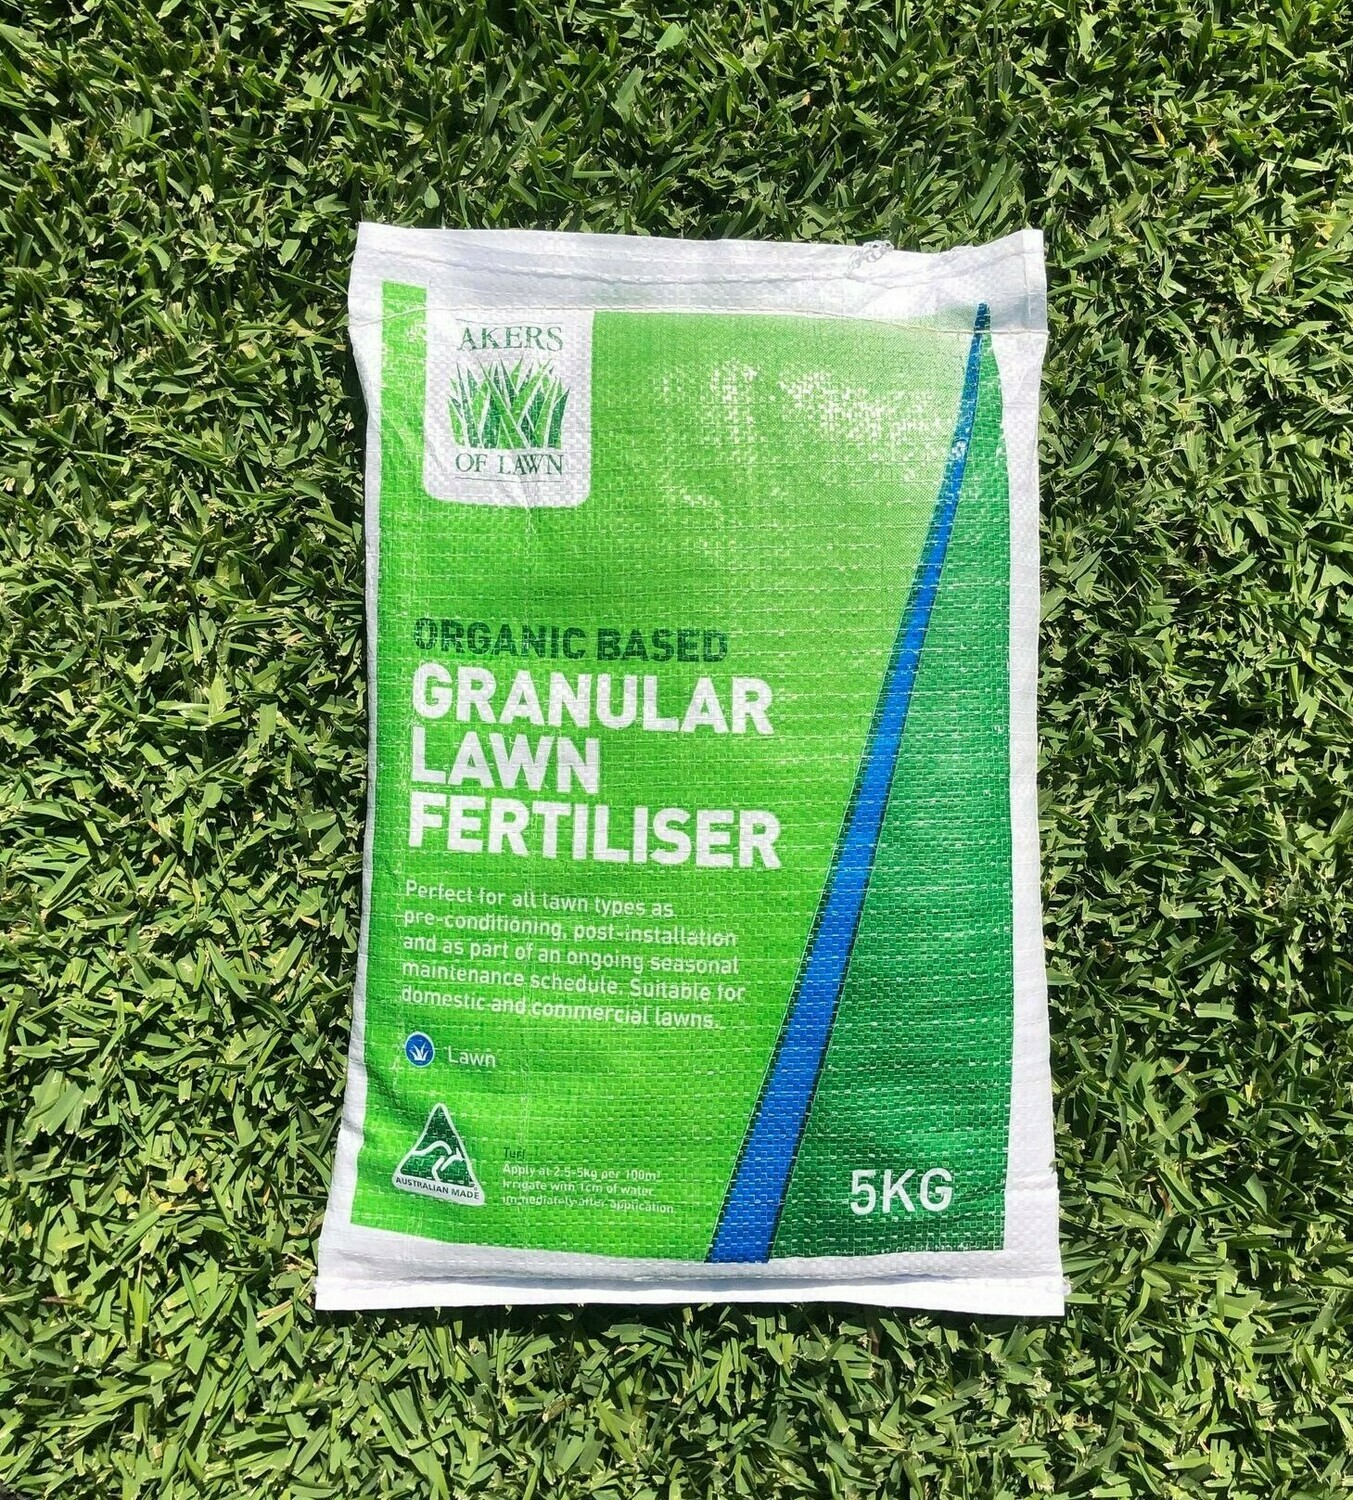 Organic Based Granular Fertiliser